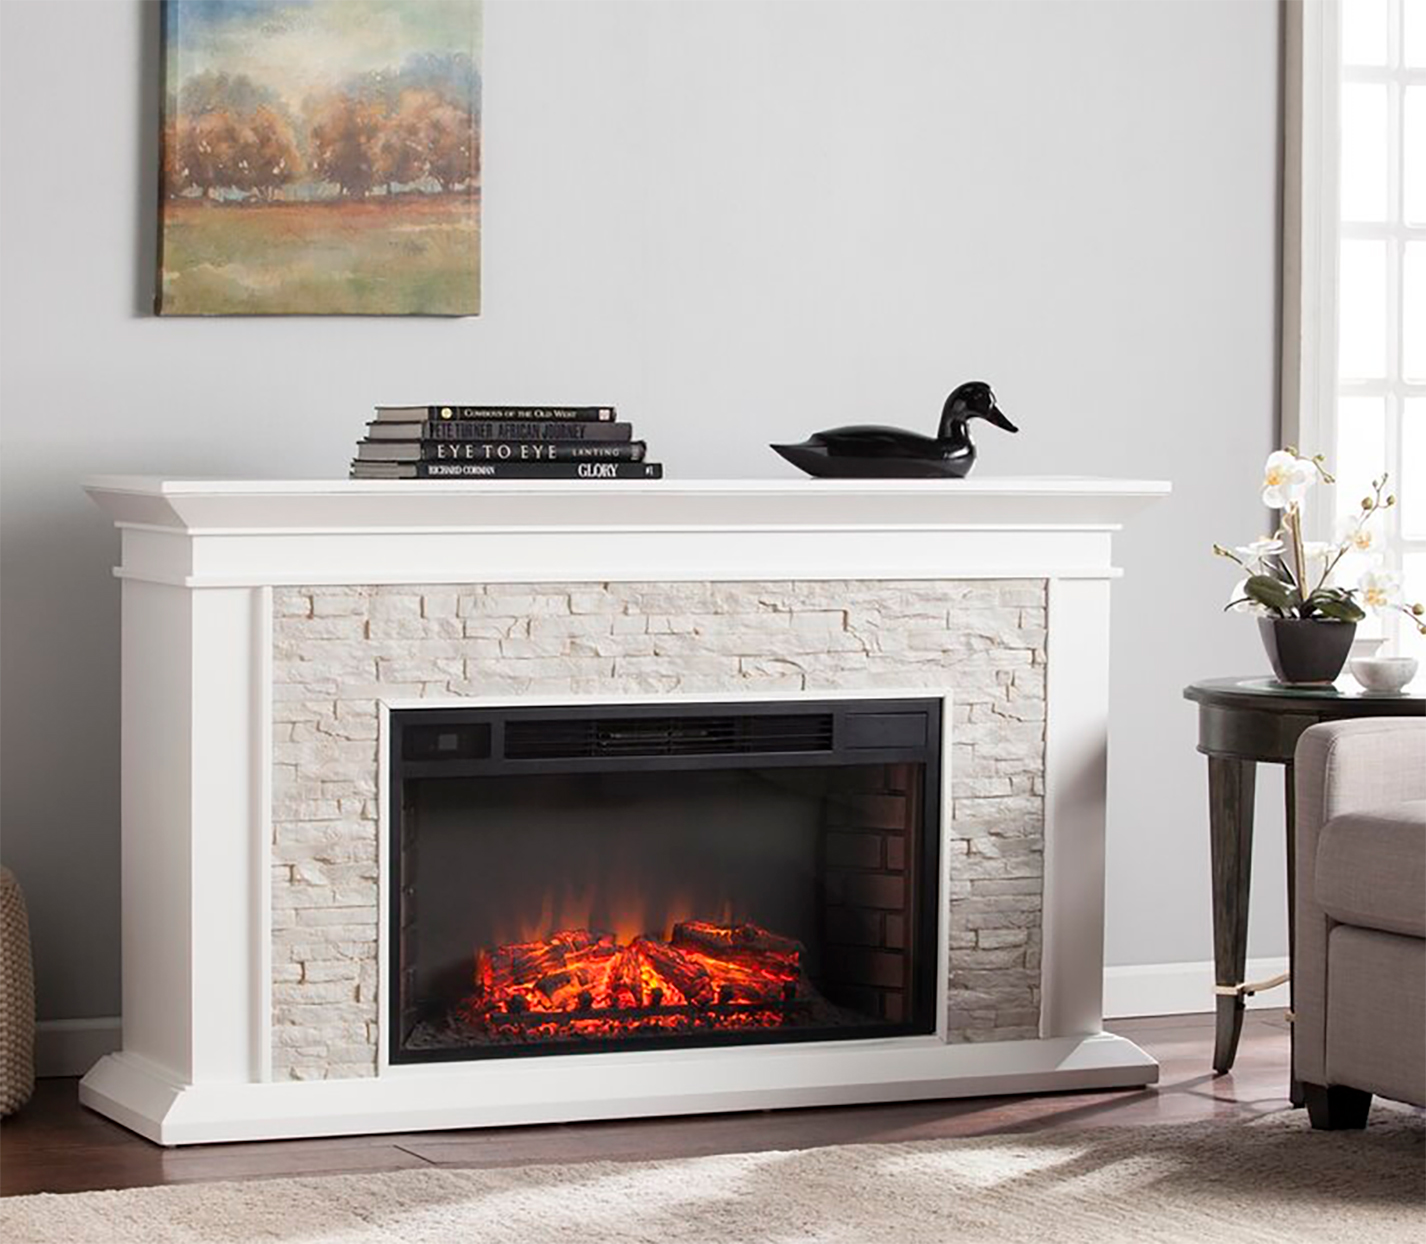 20 Best Electric Fireplaces in 20, According to Reviews   Better ...